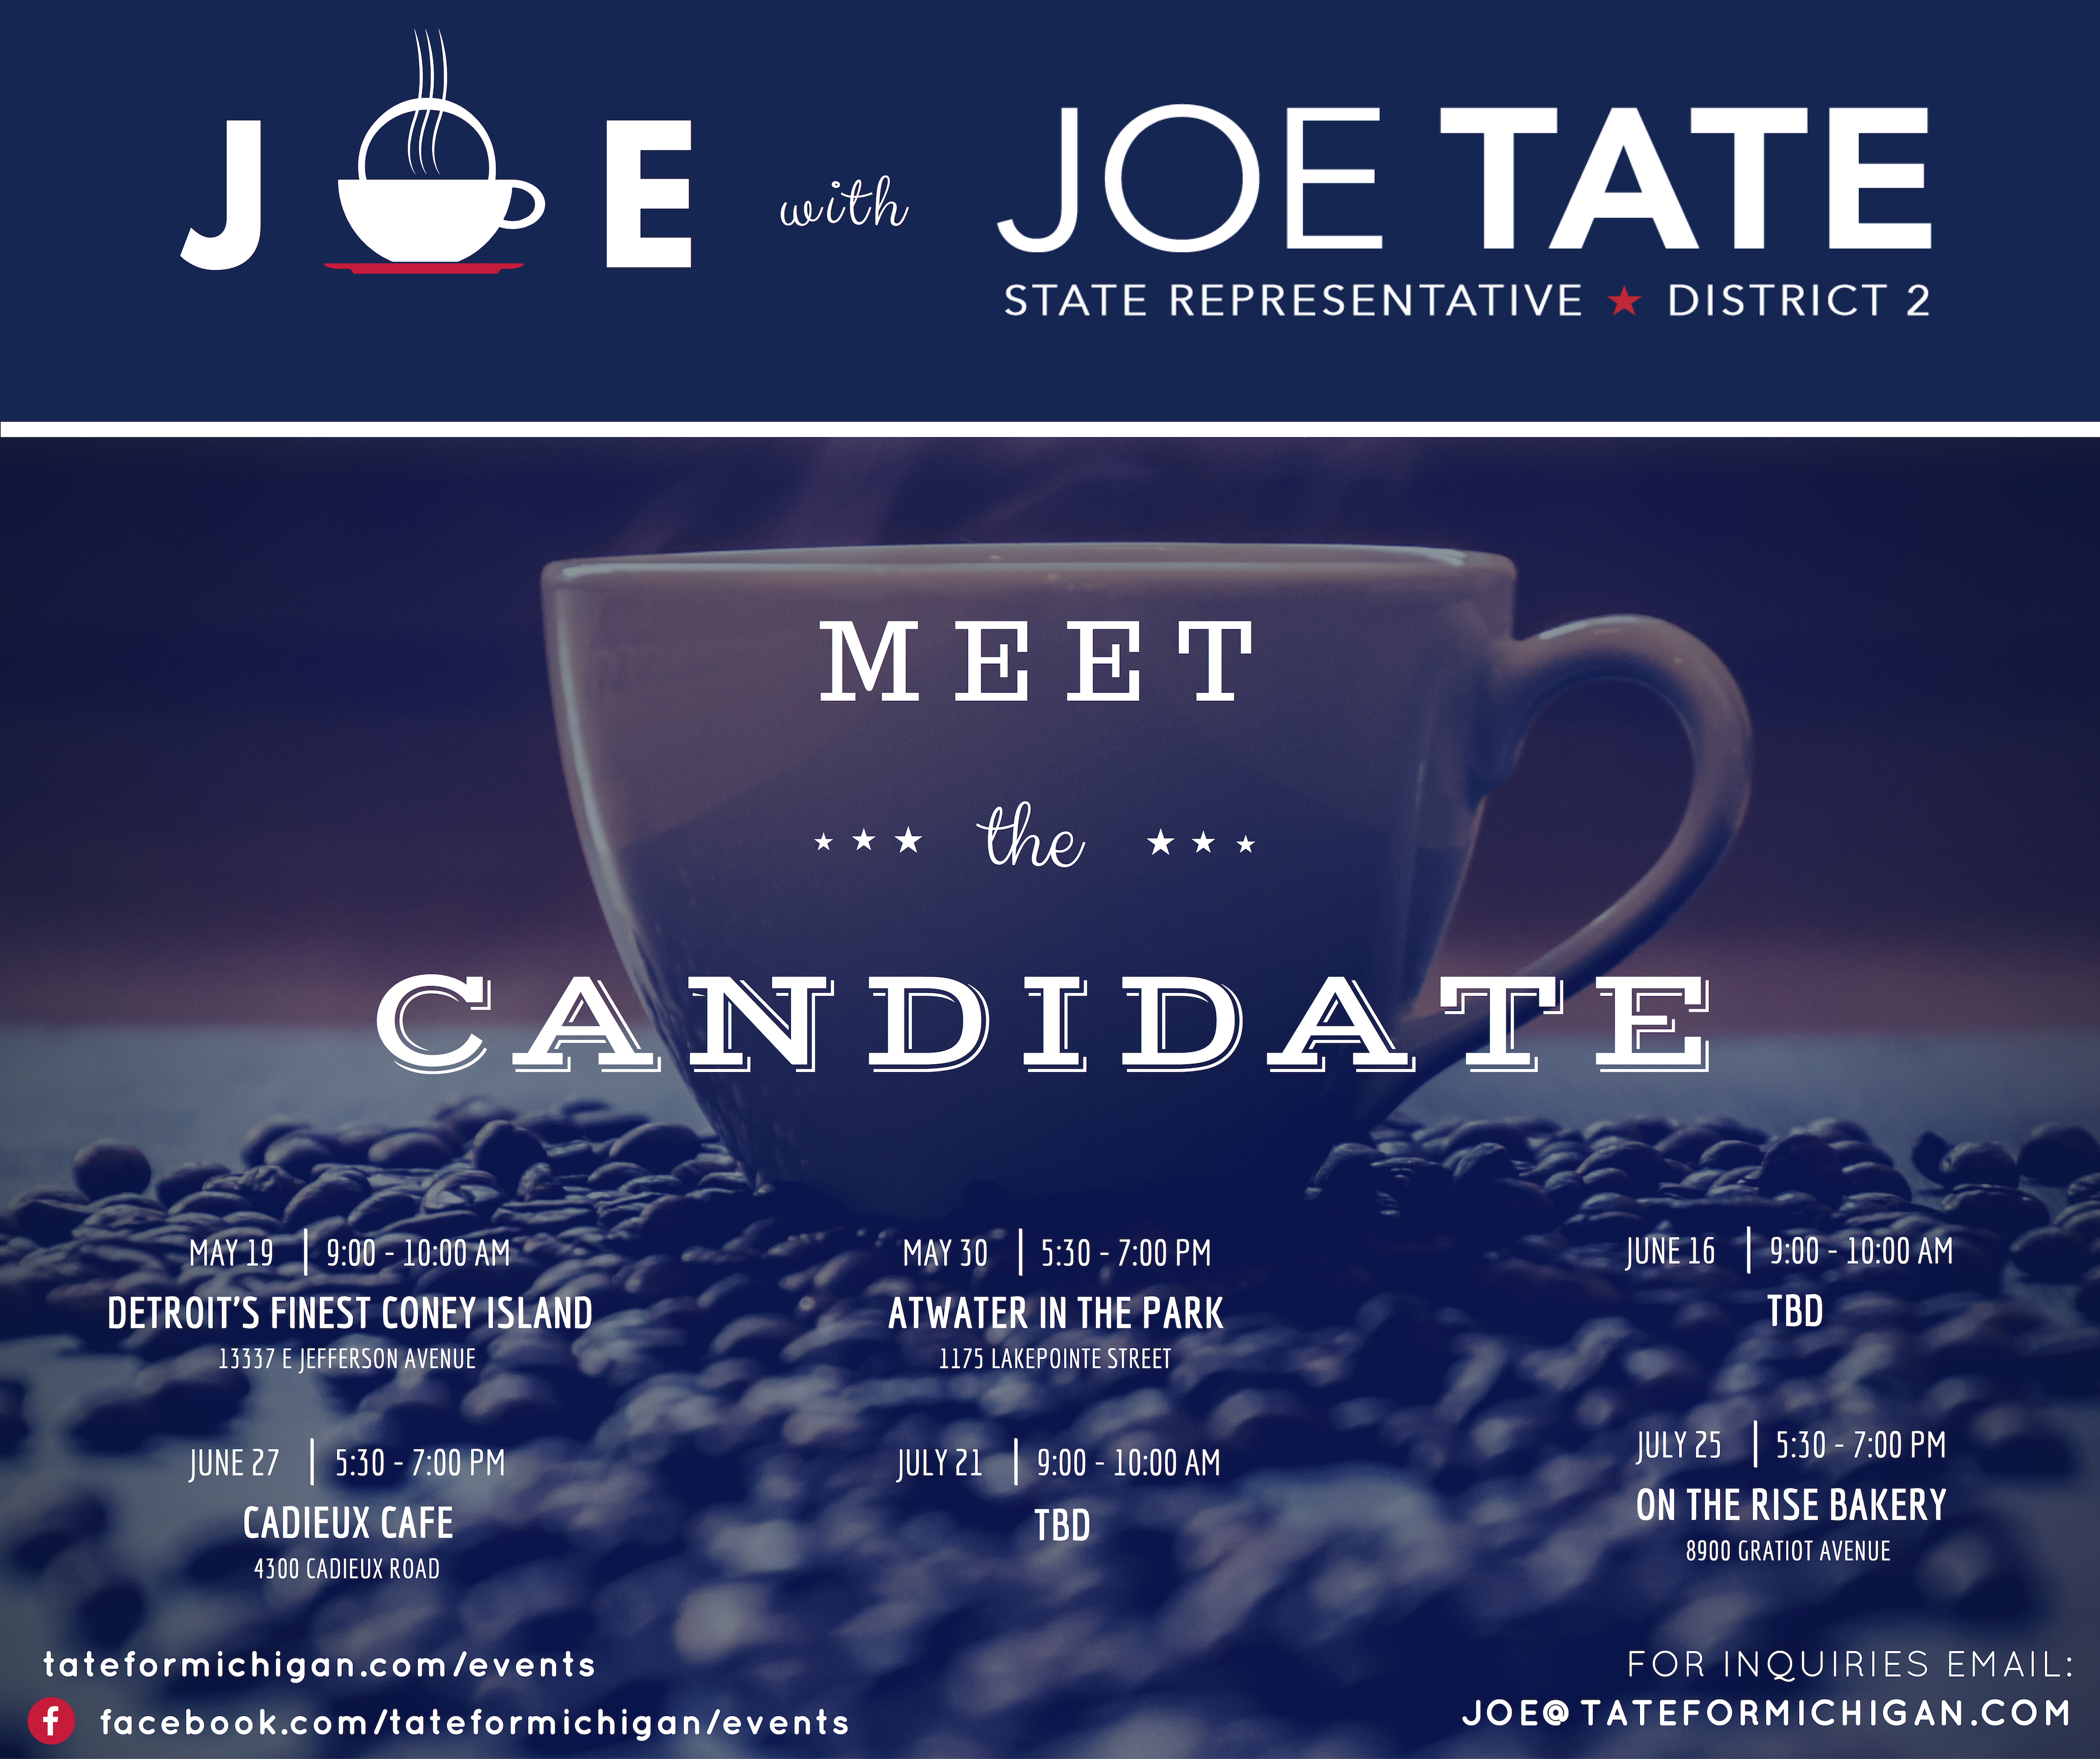 Grosse Pointe Park Meet And Greet Joe Tate For State Rep